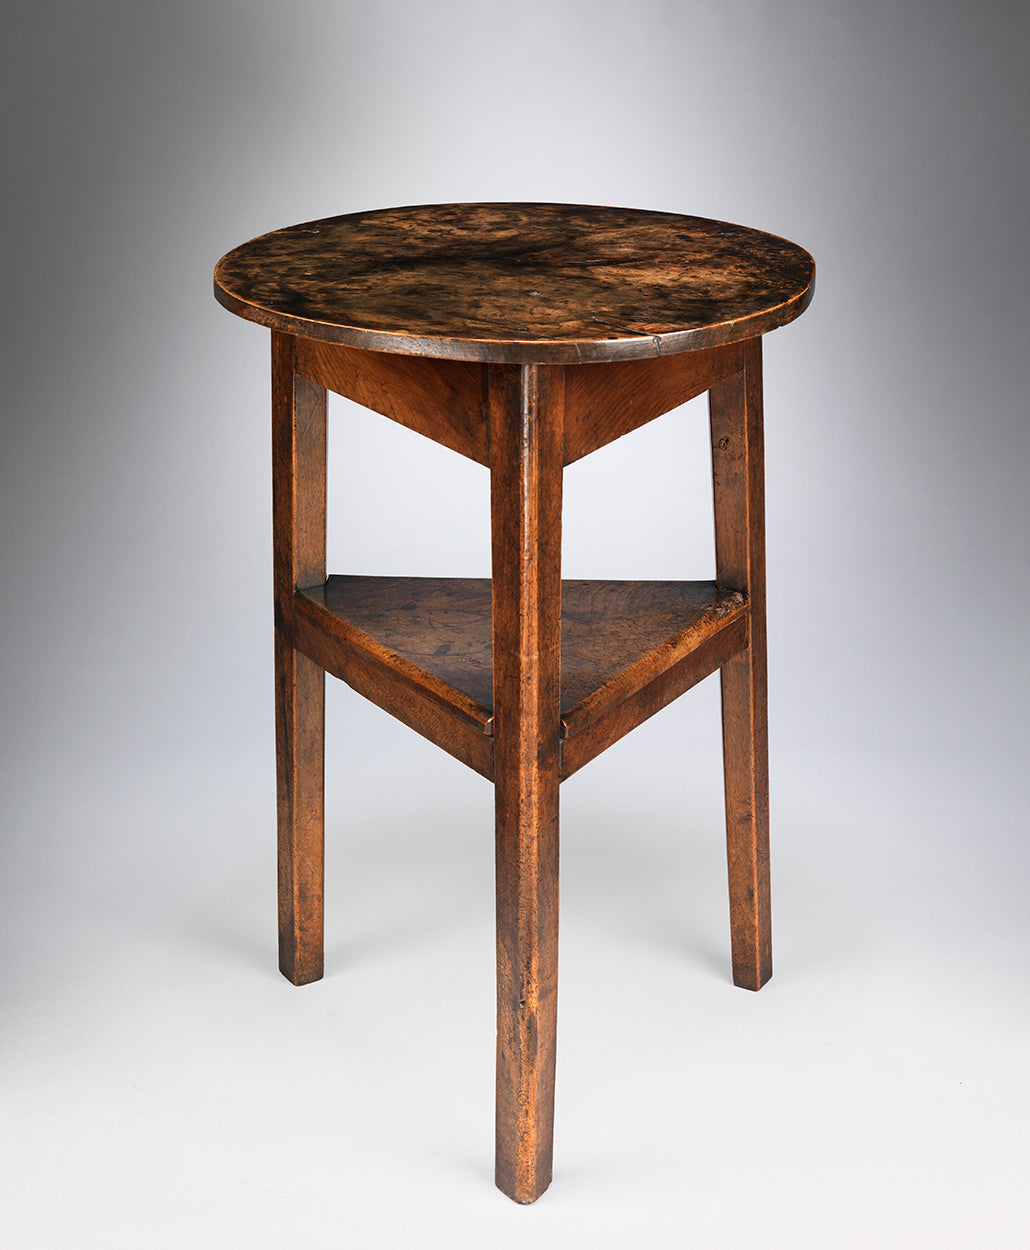 Georgian Vernacular Tavern Cricket Table